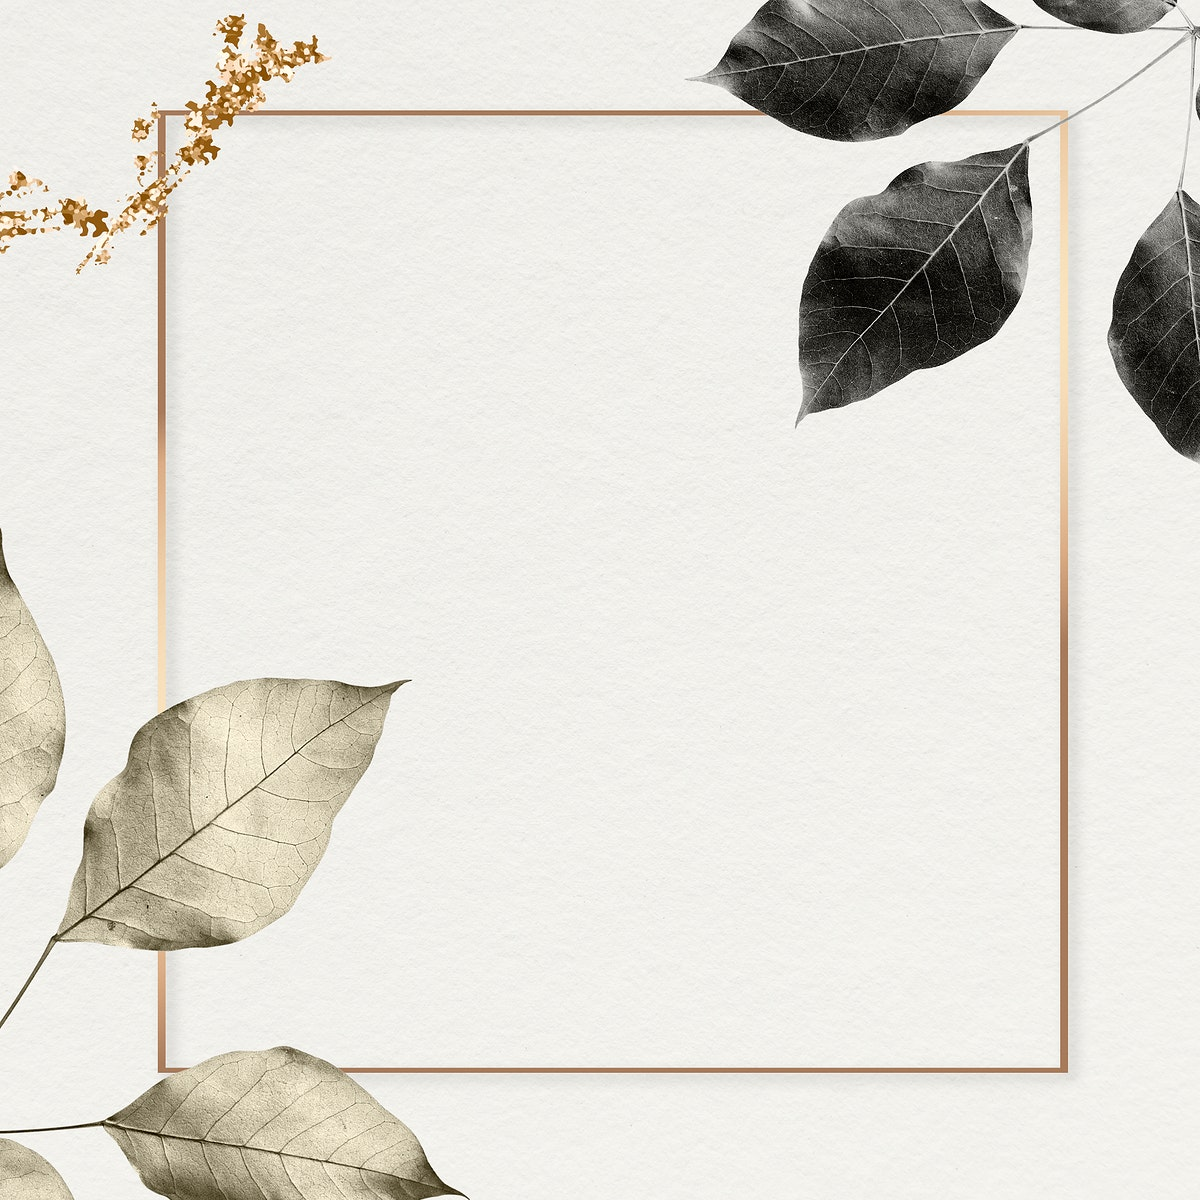 Gold frame with foliage pattern on marble textured background illustration